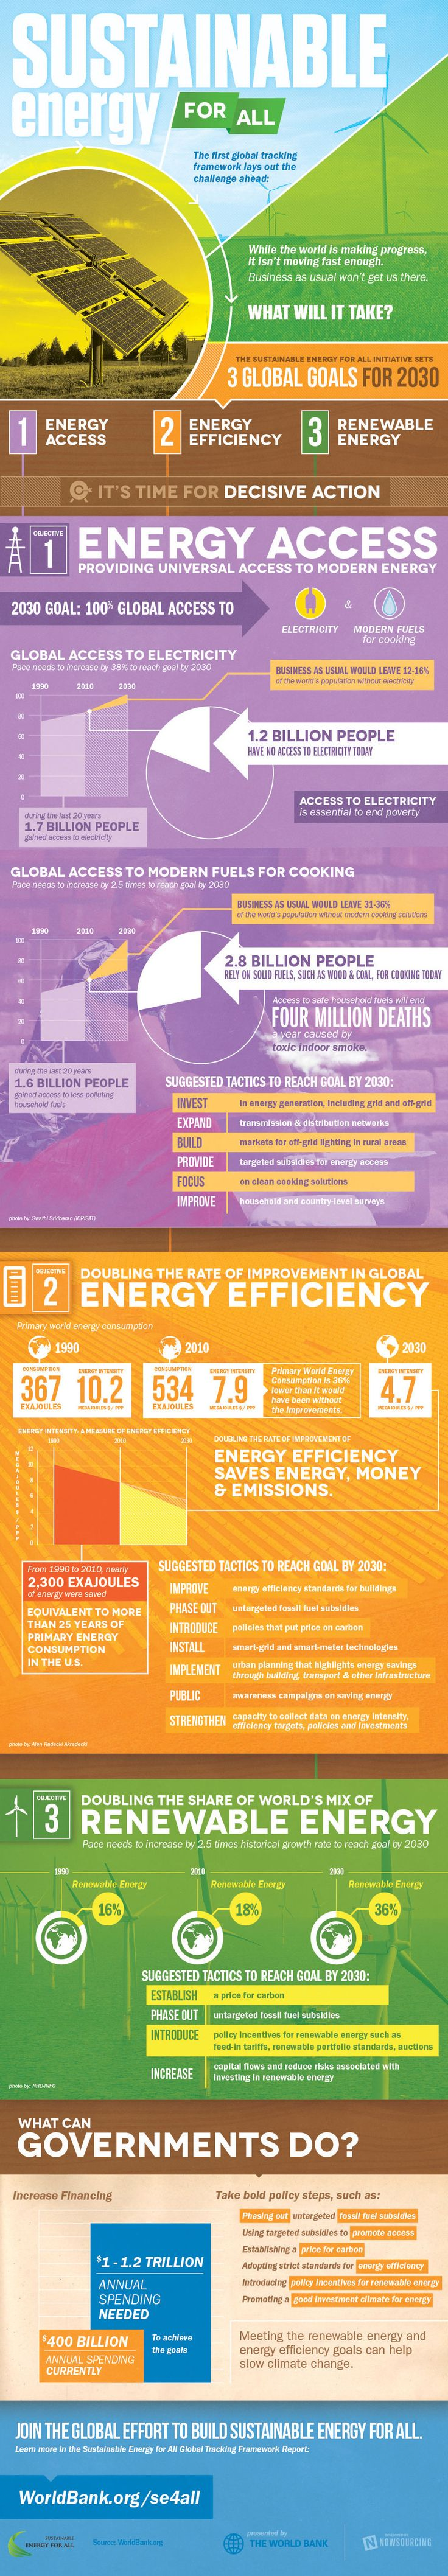 Imagine A World With Sustainable Energy & Access For All #infographic #mojowaterandlight